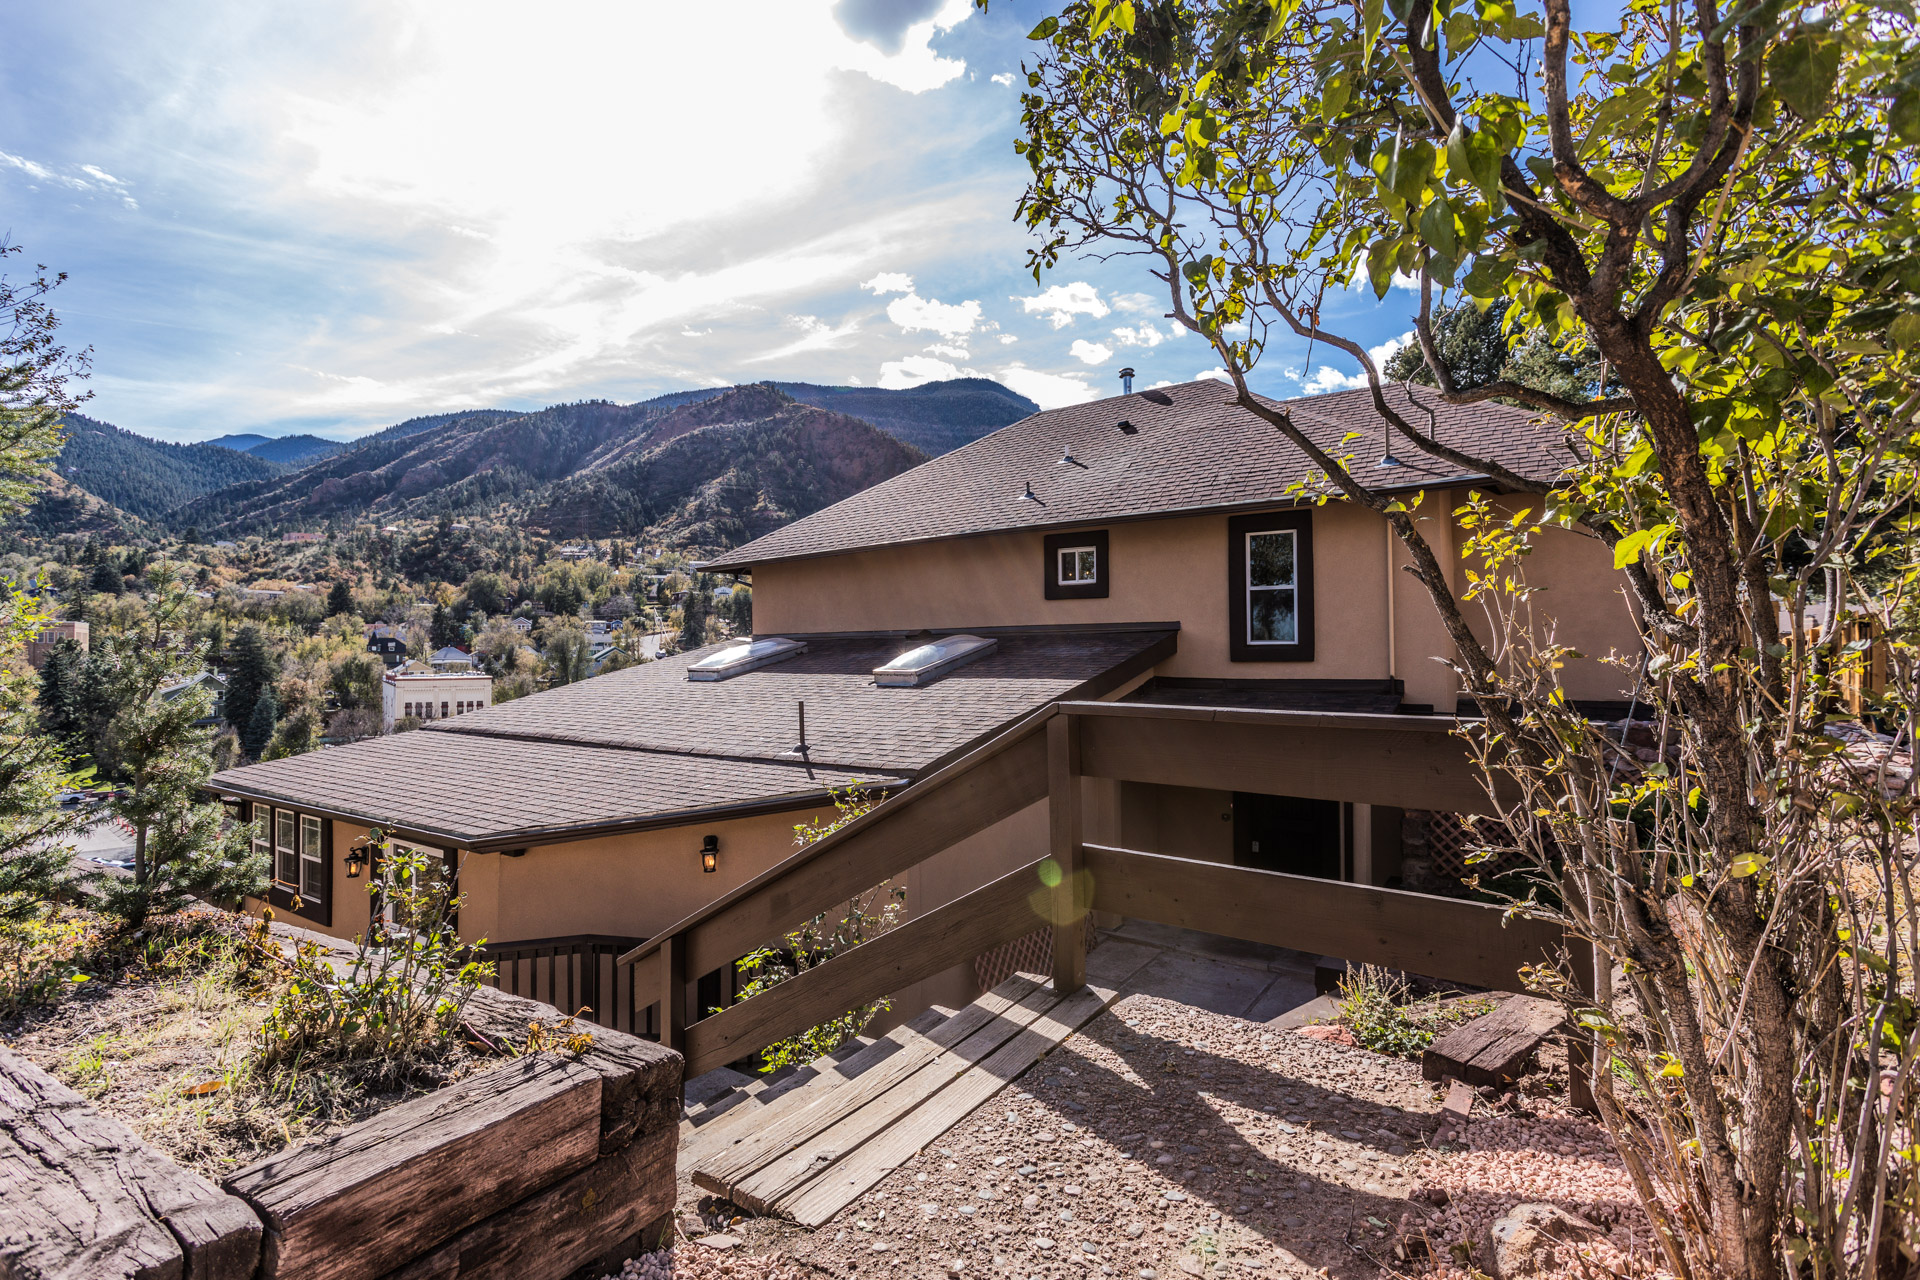 One of kind home located in the historical town of Manitou Springs